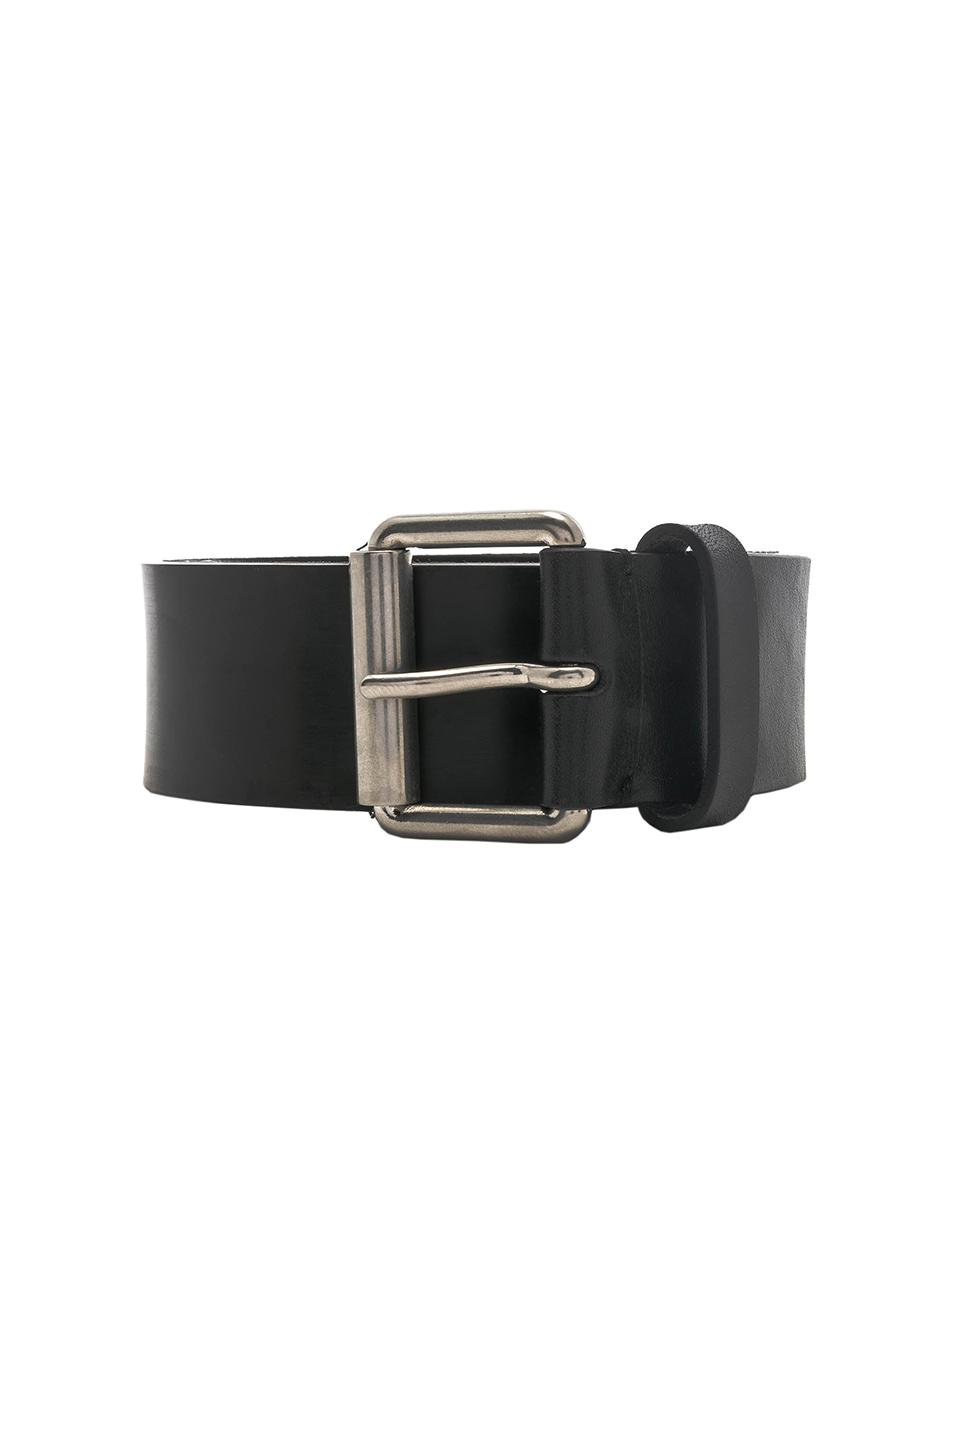 logo plaque belt - Black Maison Martin Margiela